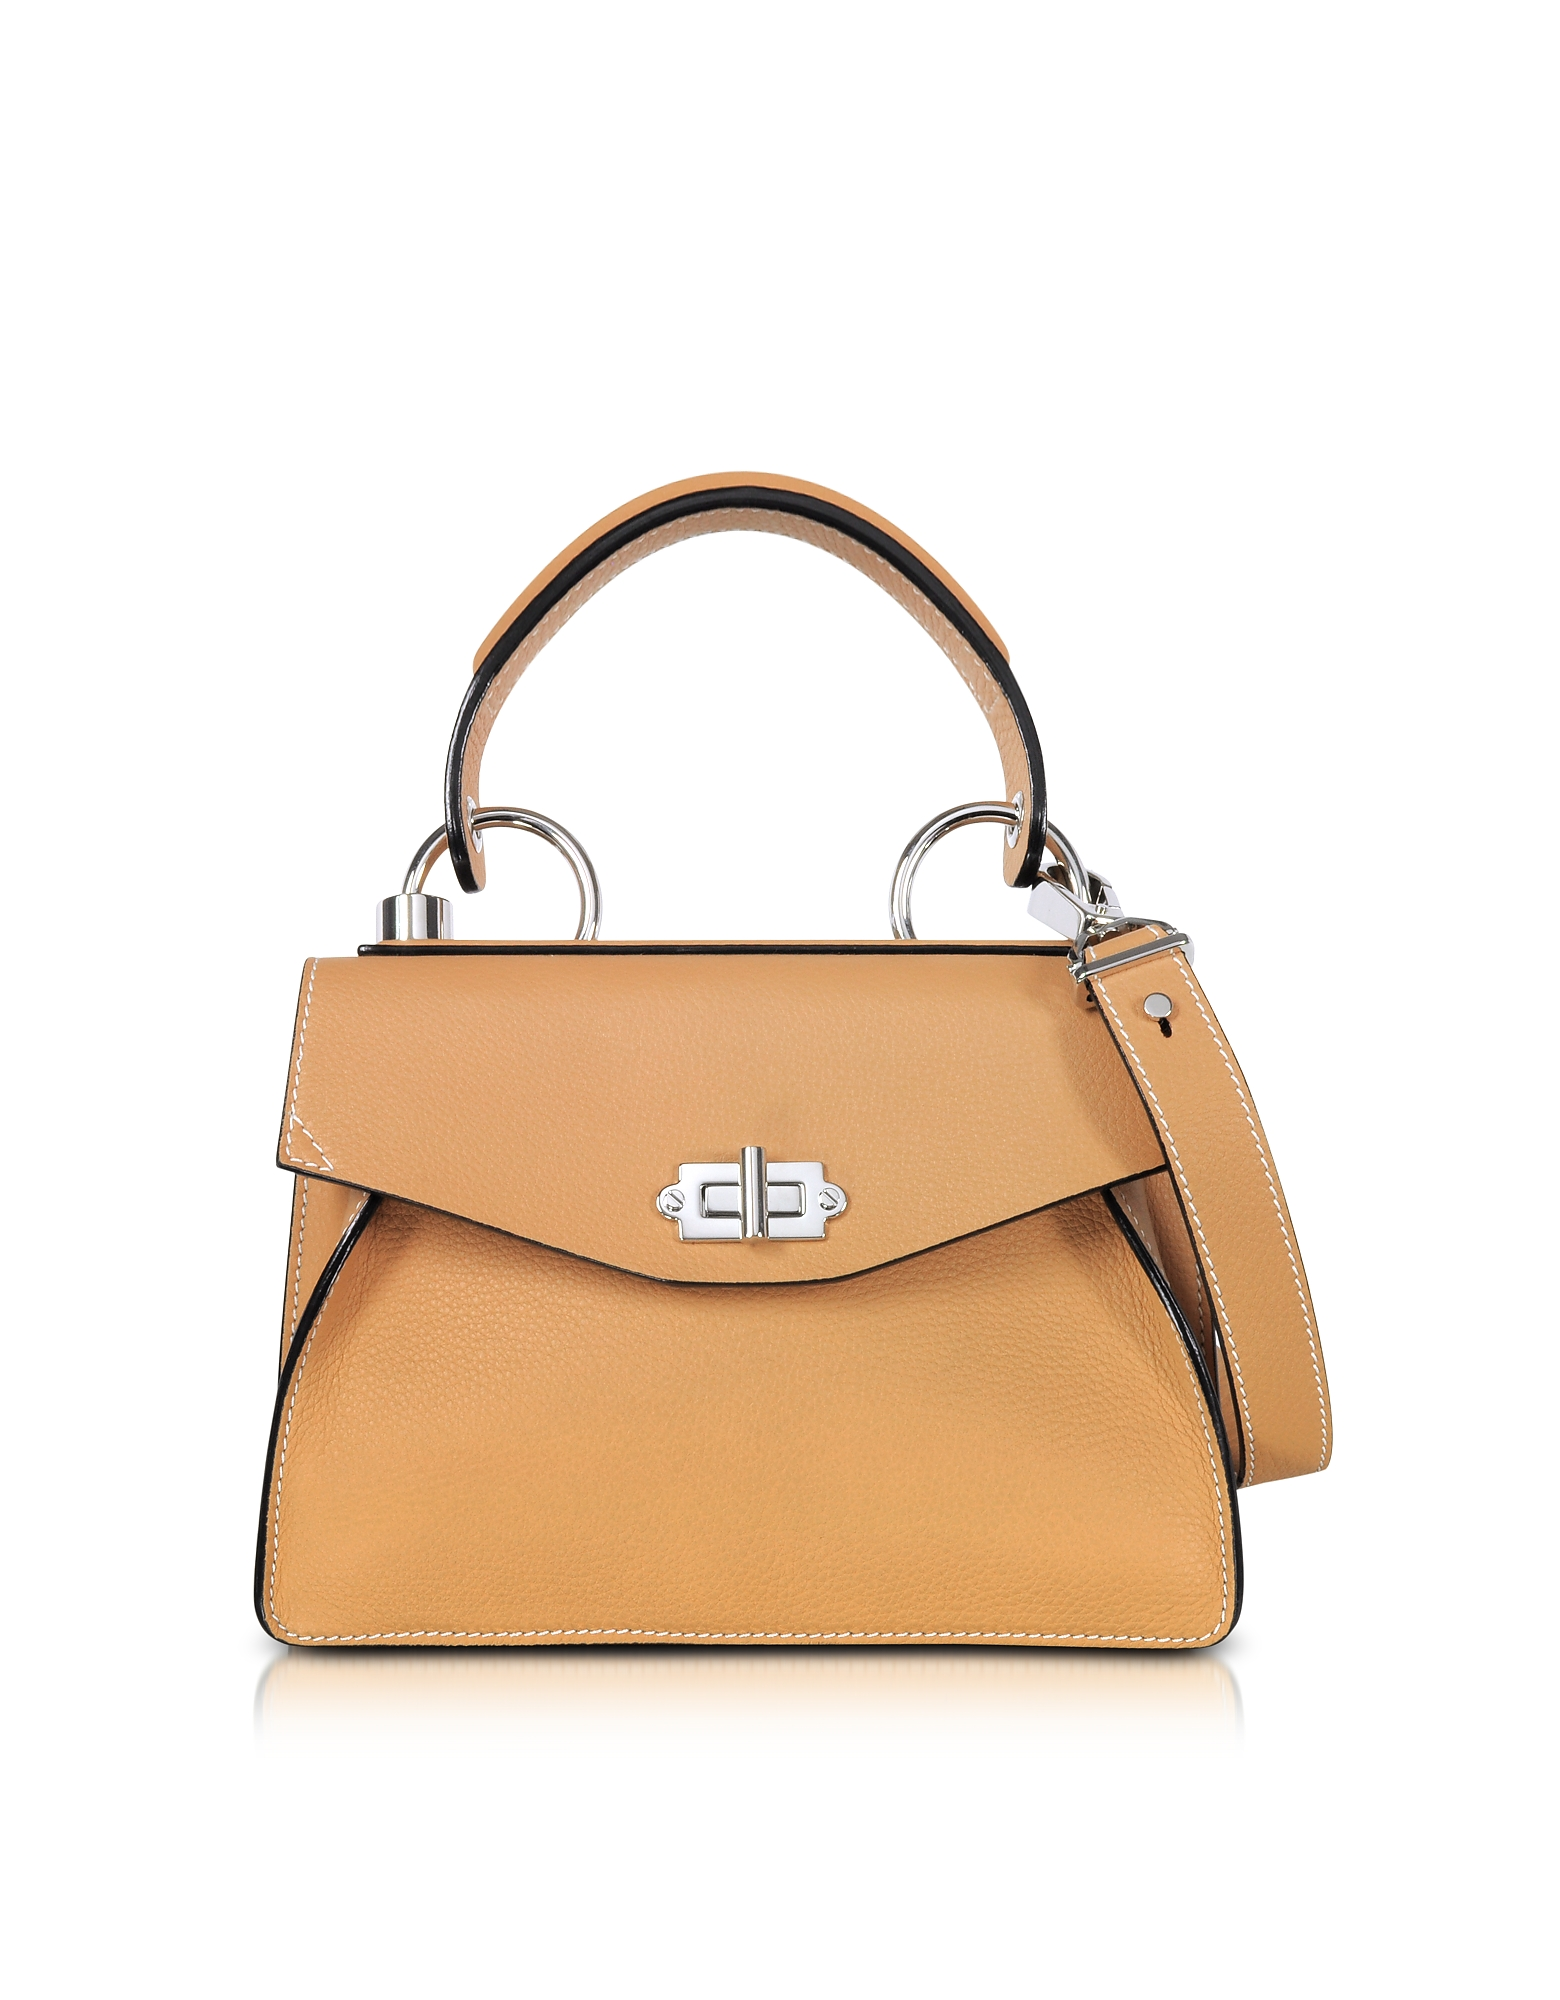 Proenza Schouler Handbags, Wheat Lindos Leather Small Hava Top Handle